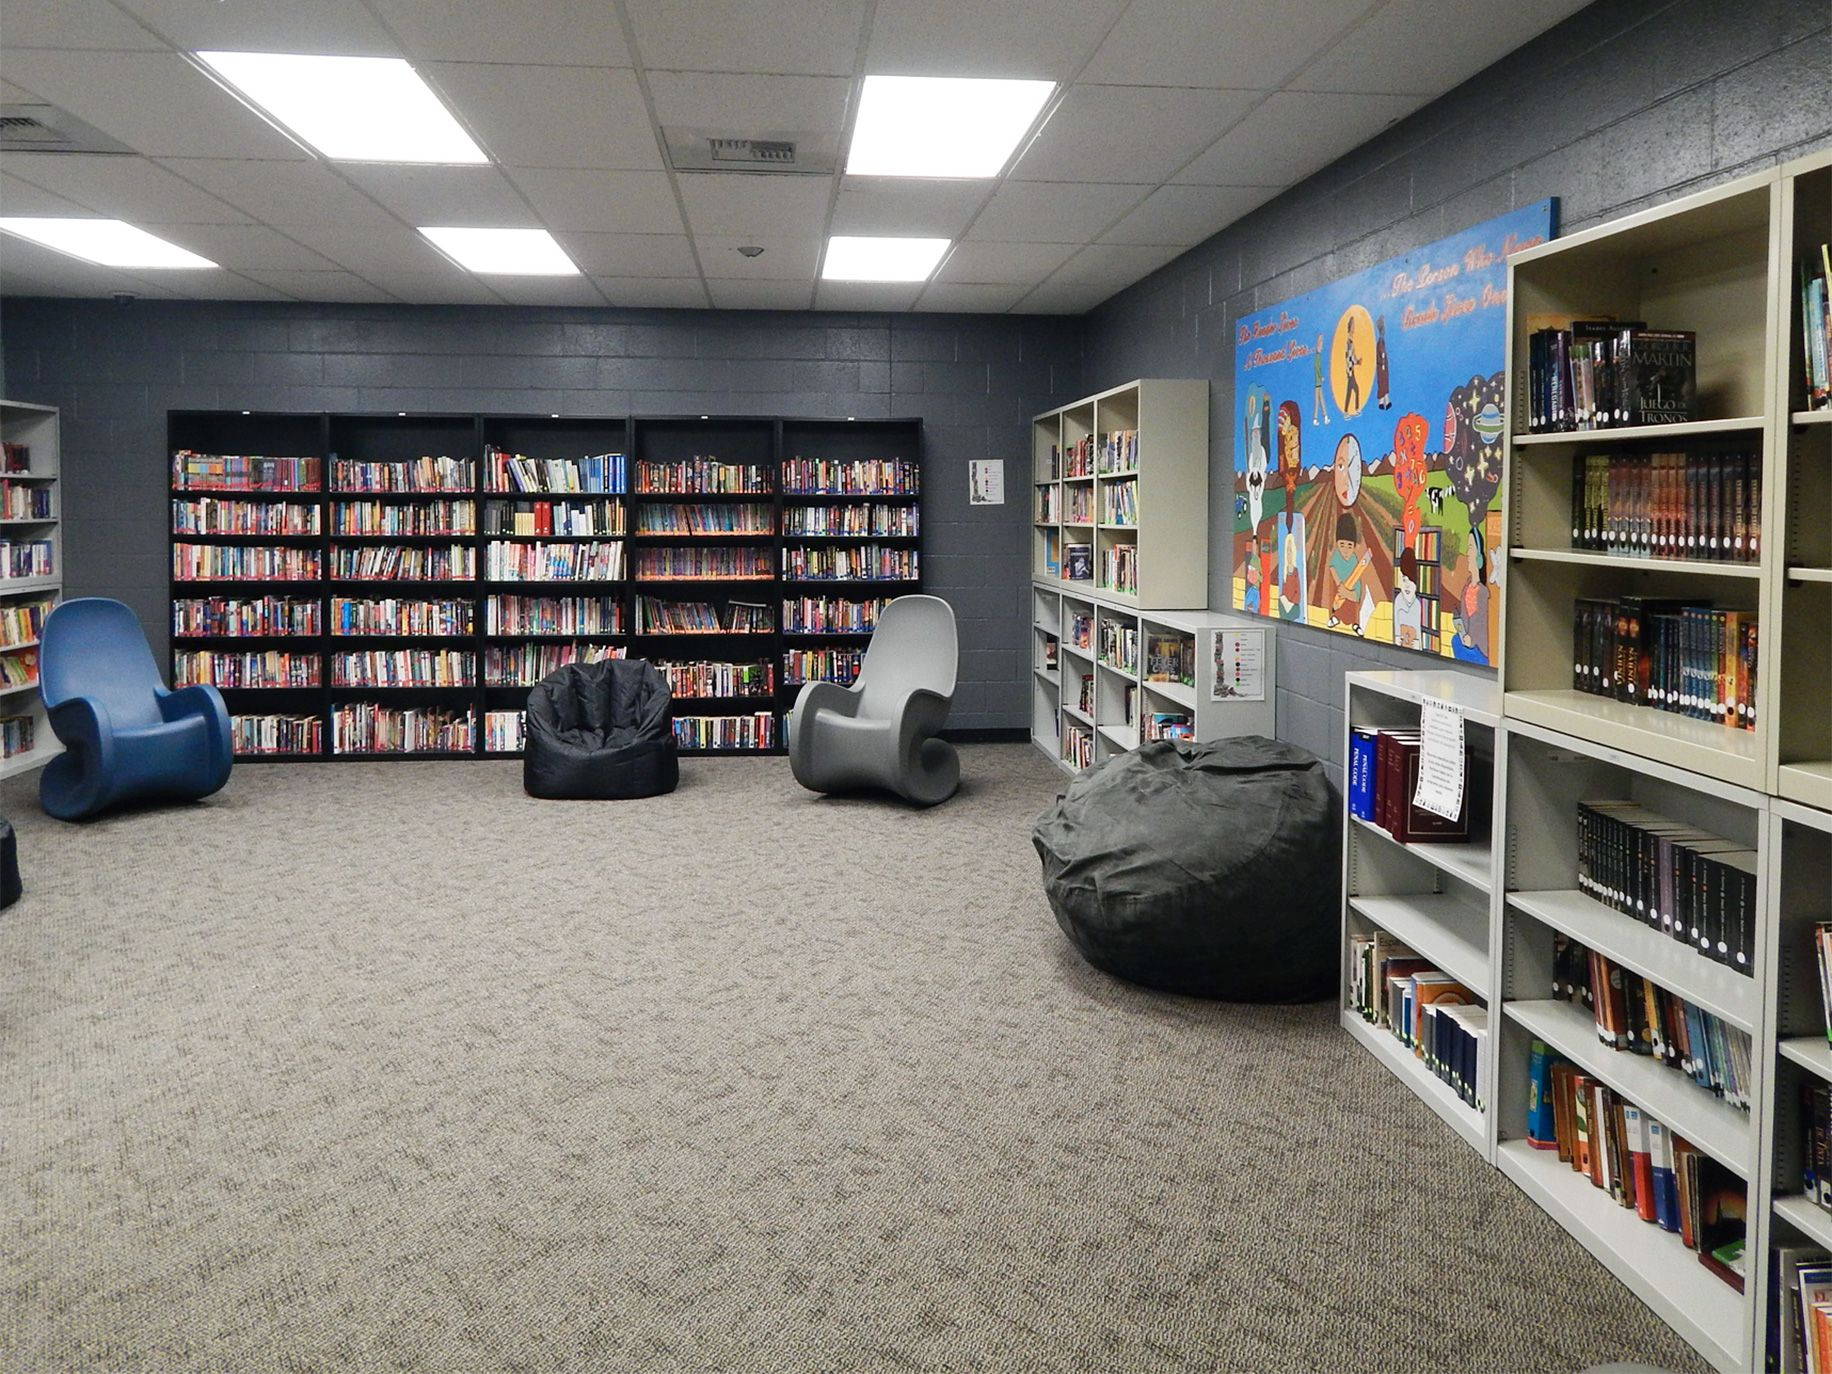 A library for minors held at the Yolo County Juvenile Detention Facility.